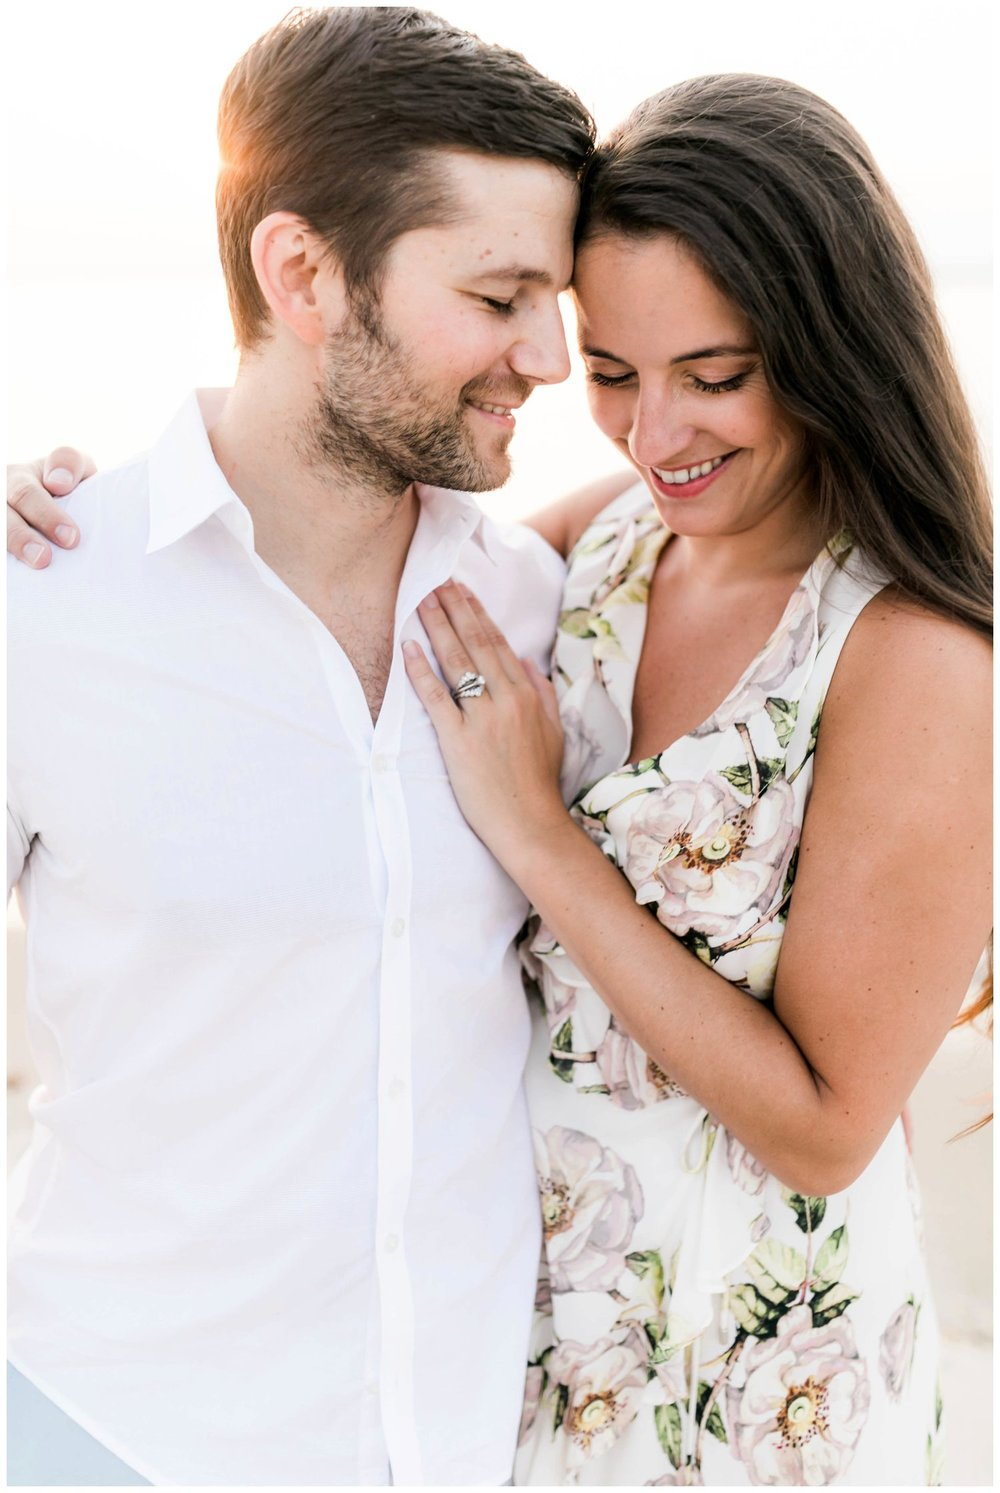 BridgeandDrew_Sunset_Engagement_OceanCityNJ_Photographer_MagdalenaStudios_0014.jpg